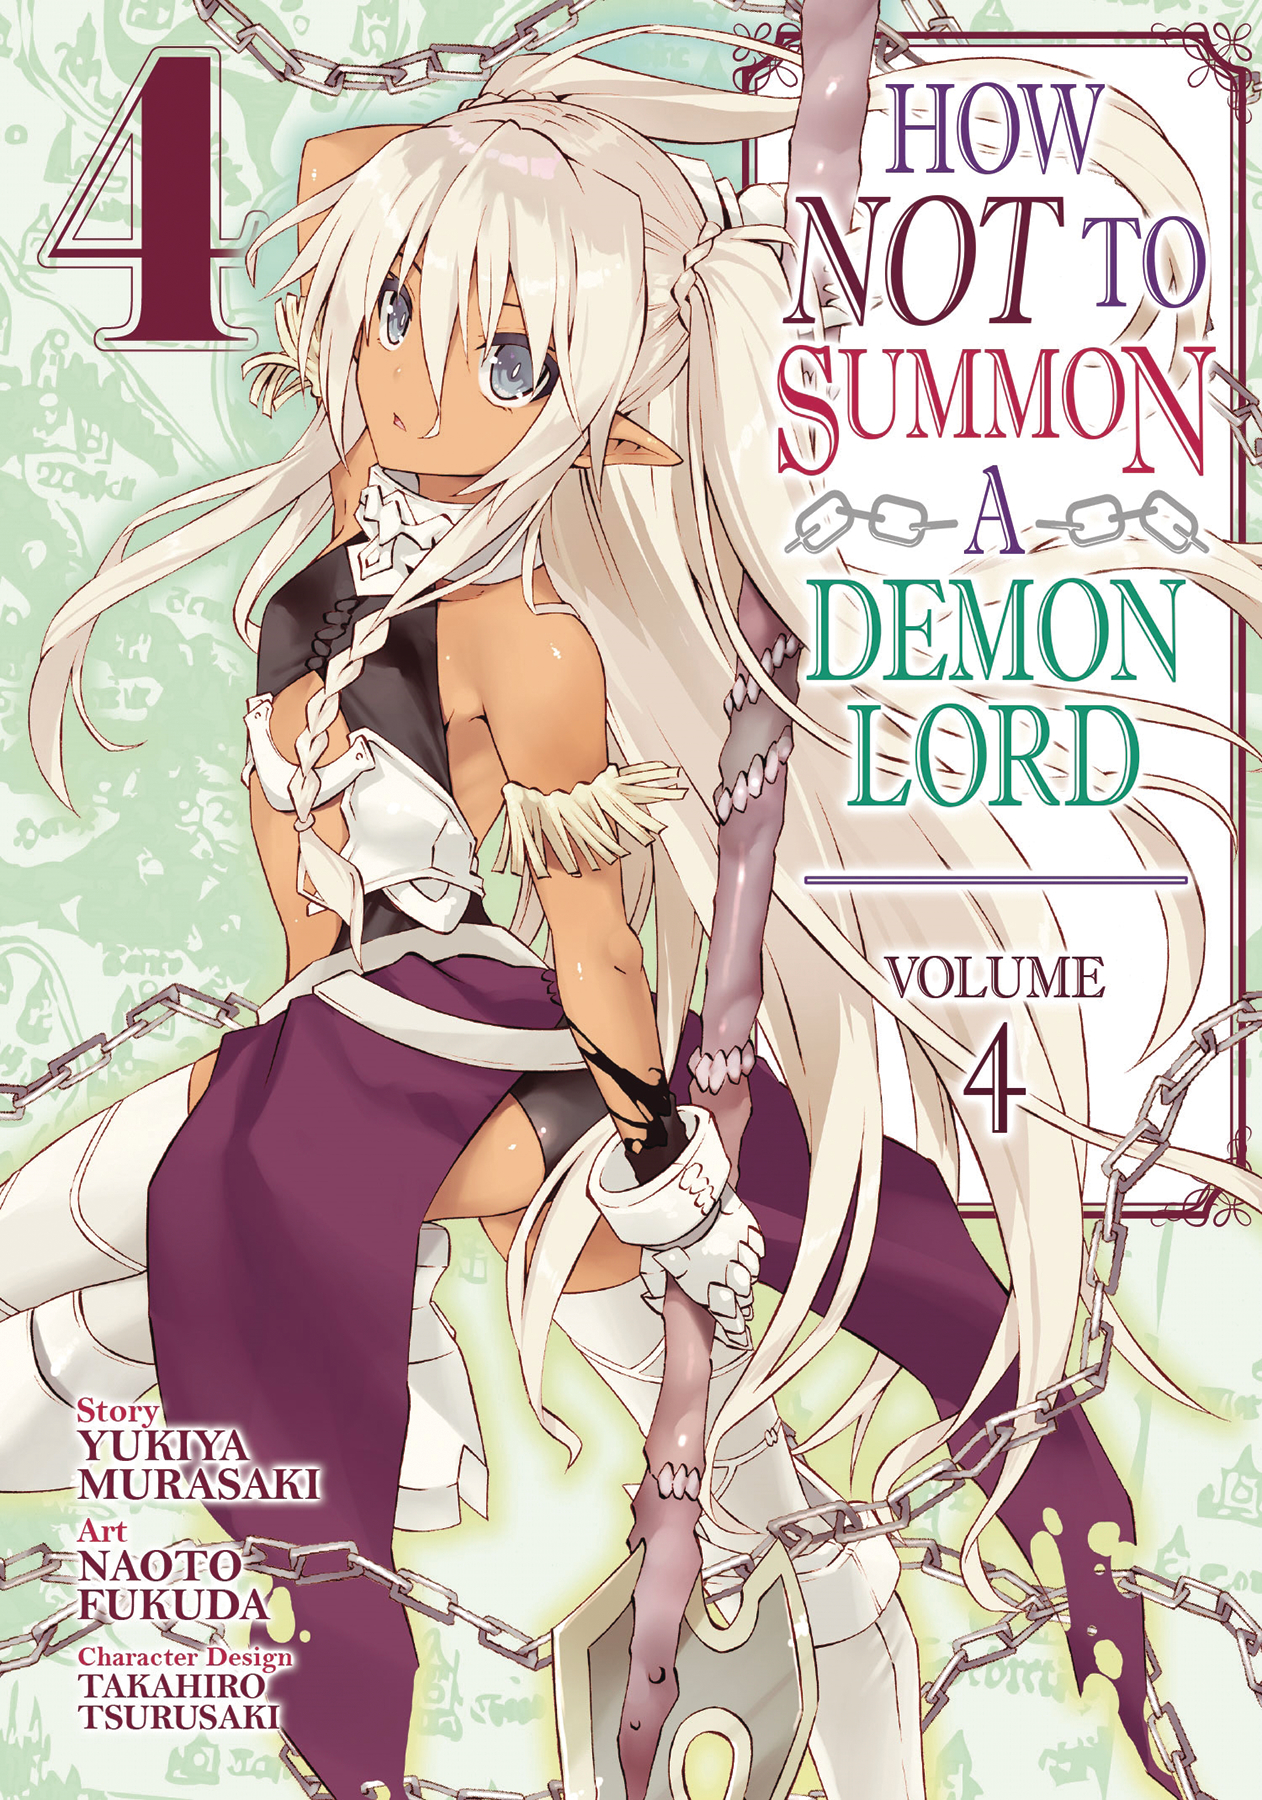 HOW NOT TO SUMMON DEMON LORD GN VOL 04 (MR)